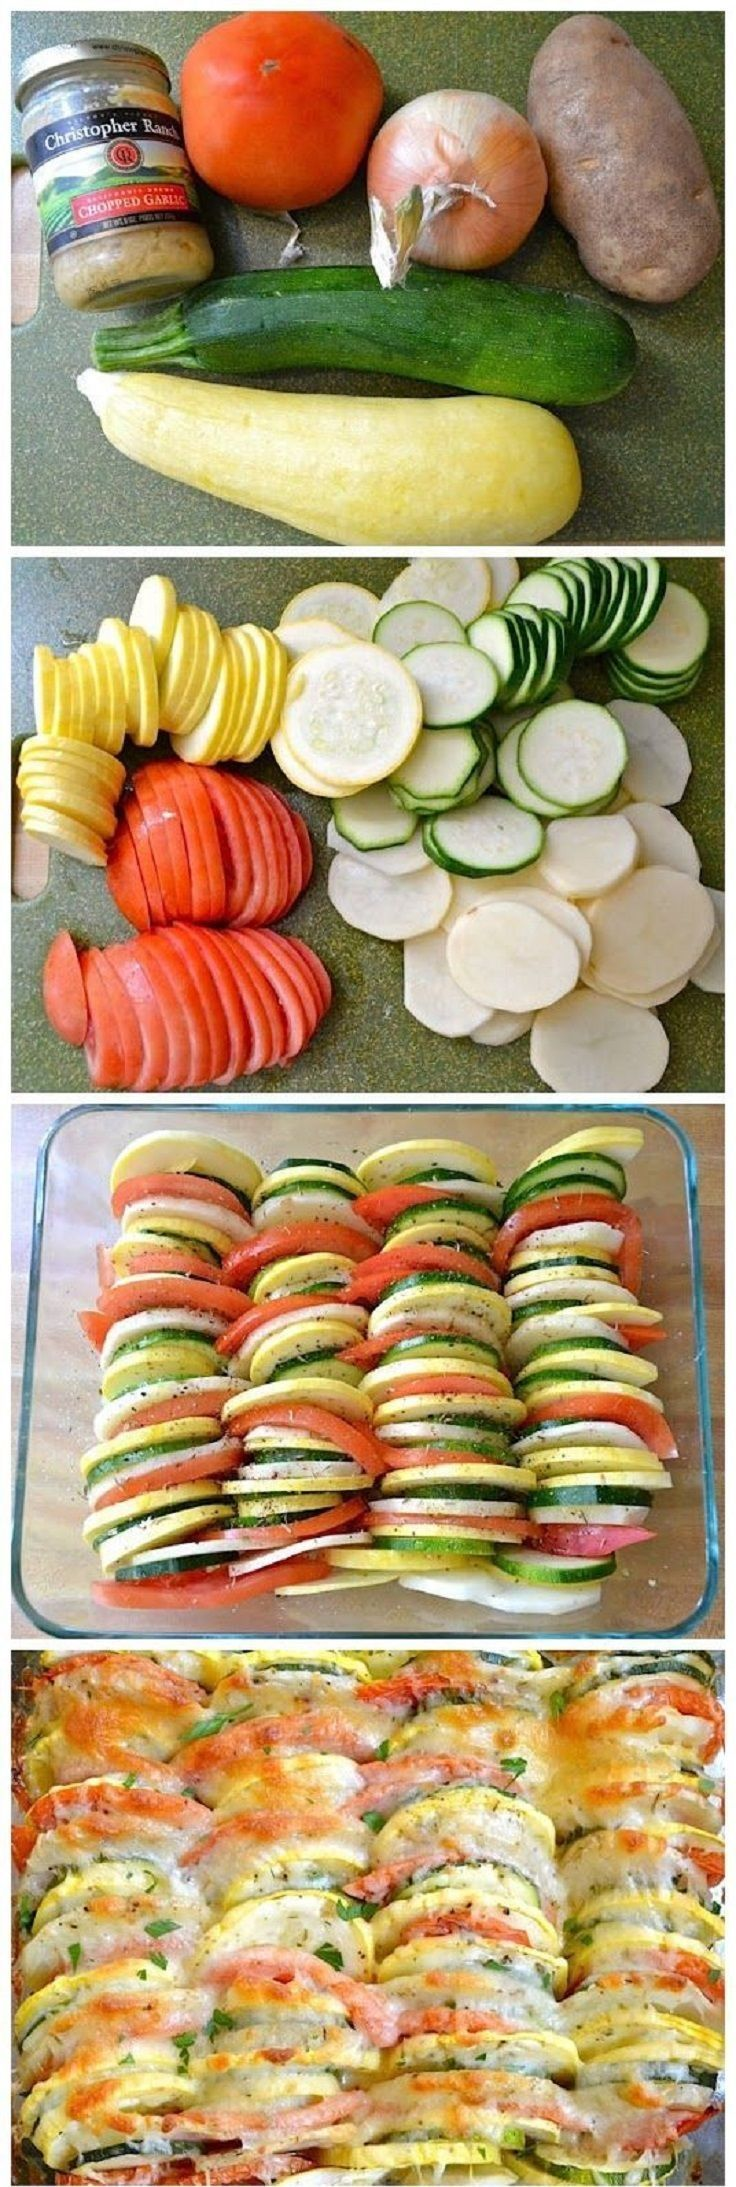 via budgetbytes.com Everyone enjoys vegetables and their natural subtle flavors. For making this meal, you need to slice thin the vegetables, seasoned only with a little salt, pepper, and thyme and then topped with just a small amount of flavorful cheese. Roasting the vegetables magnifies their flavor and gives them just a hint of sweetness.